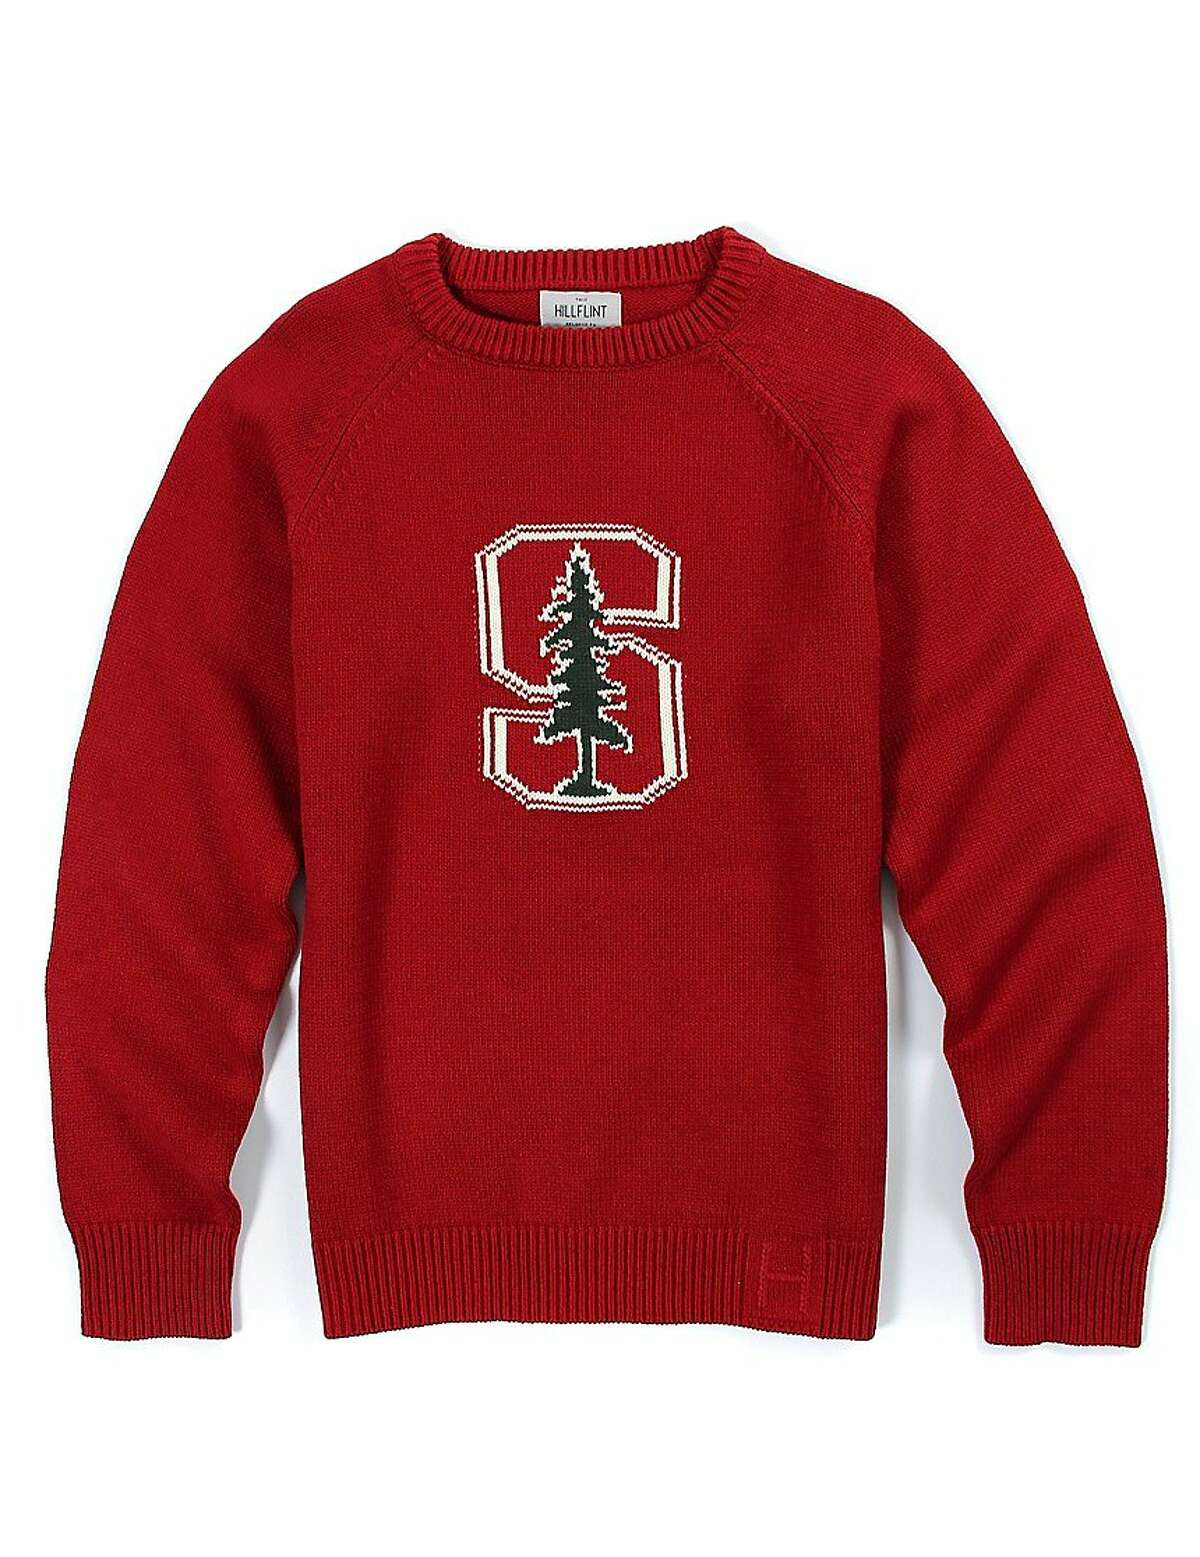 San Francisco company Hillflint manufactures college-themed apparel such as this Stanford Heritage sweater ($89, https://www.hillflint.com).